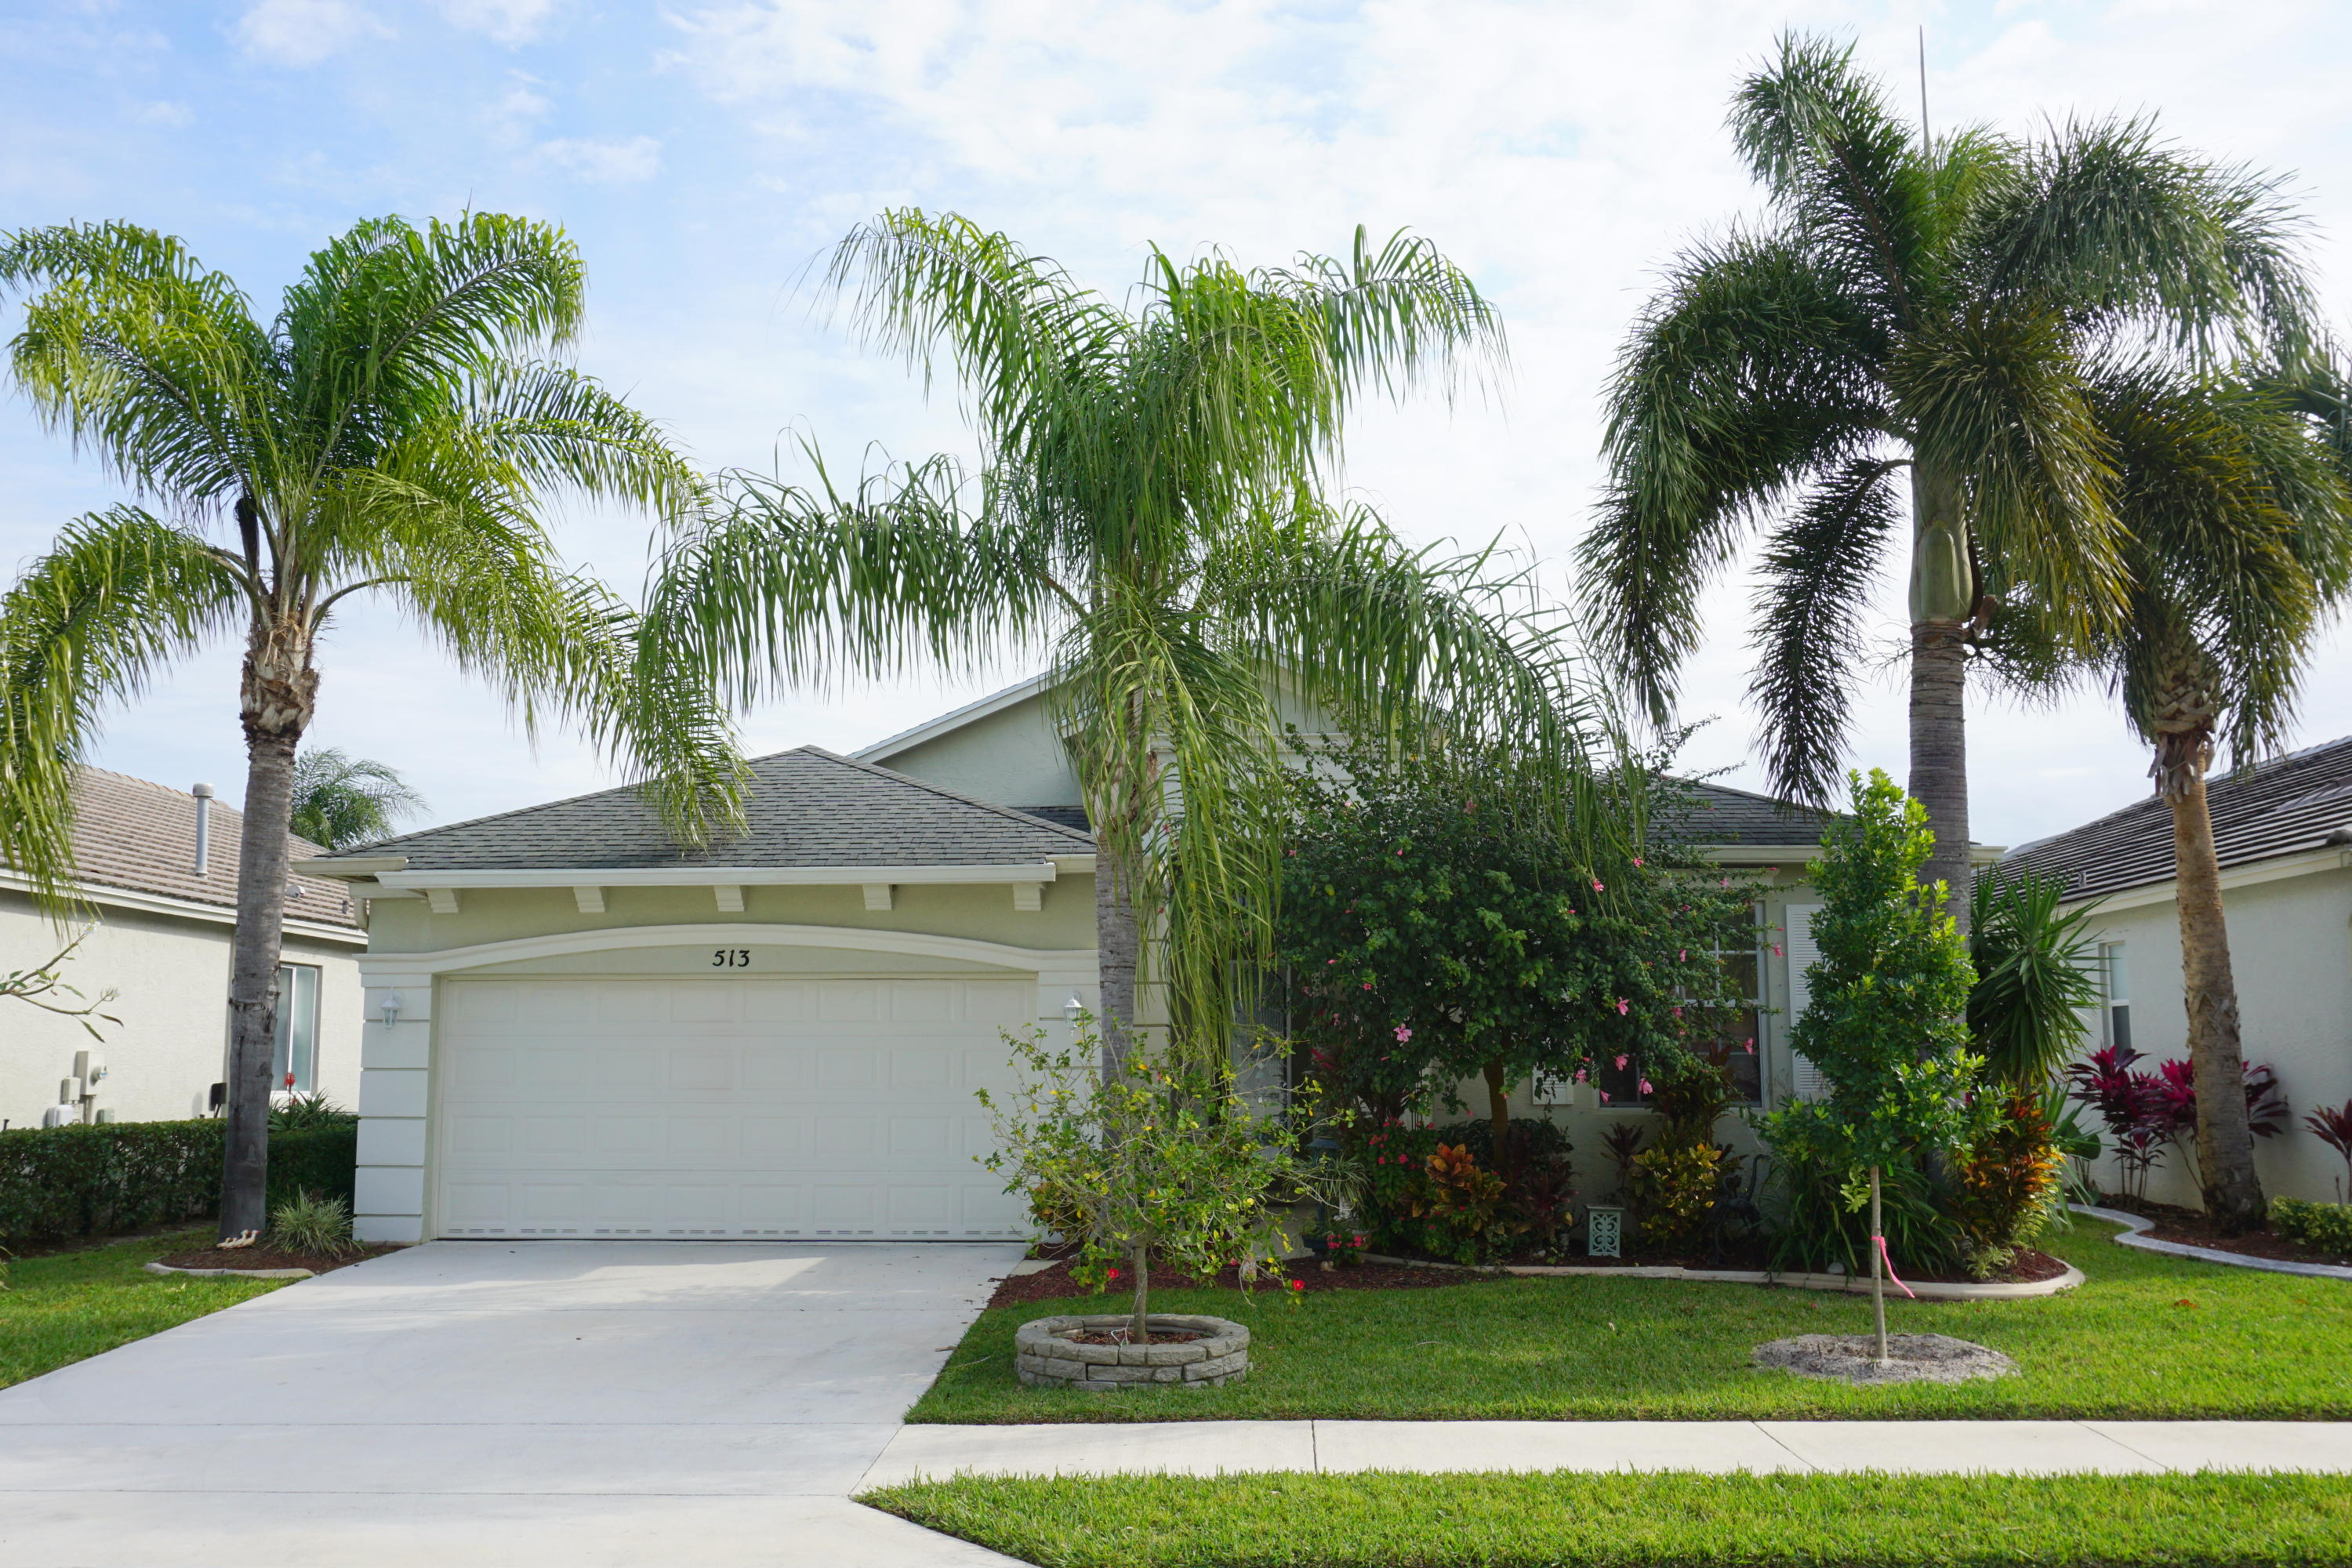 513 Indian Key Drive, Port Saint Lucie, Florida 34986, 3 Bedrooms Bedrooms, ,2 BathroomsBathrooms,Single Family,For Sale,Lake Forest,Indian Key,RX-10498986